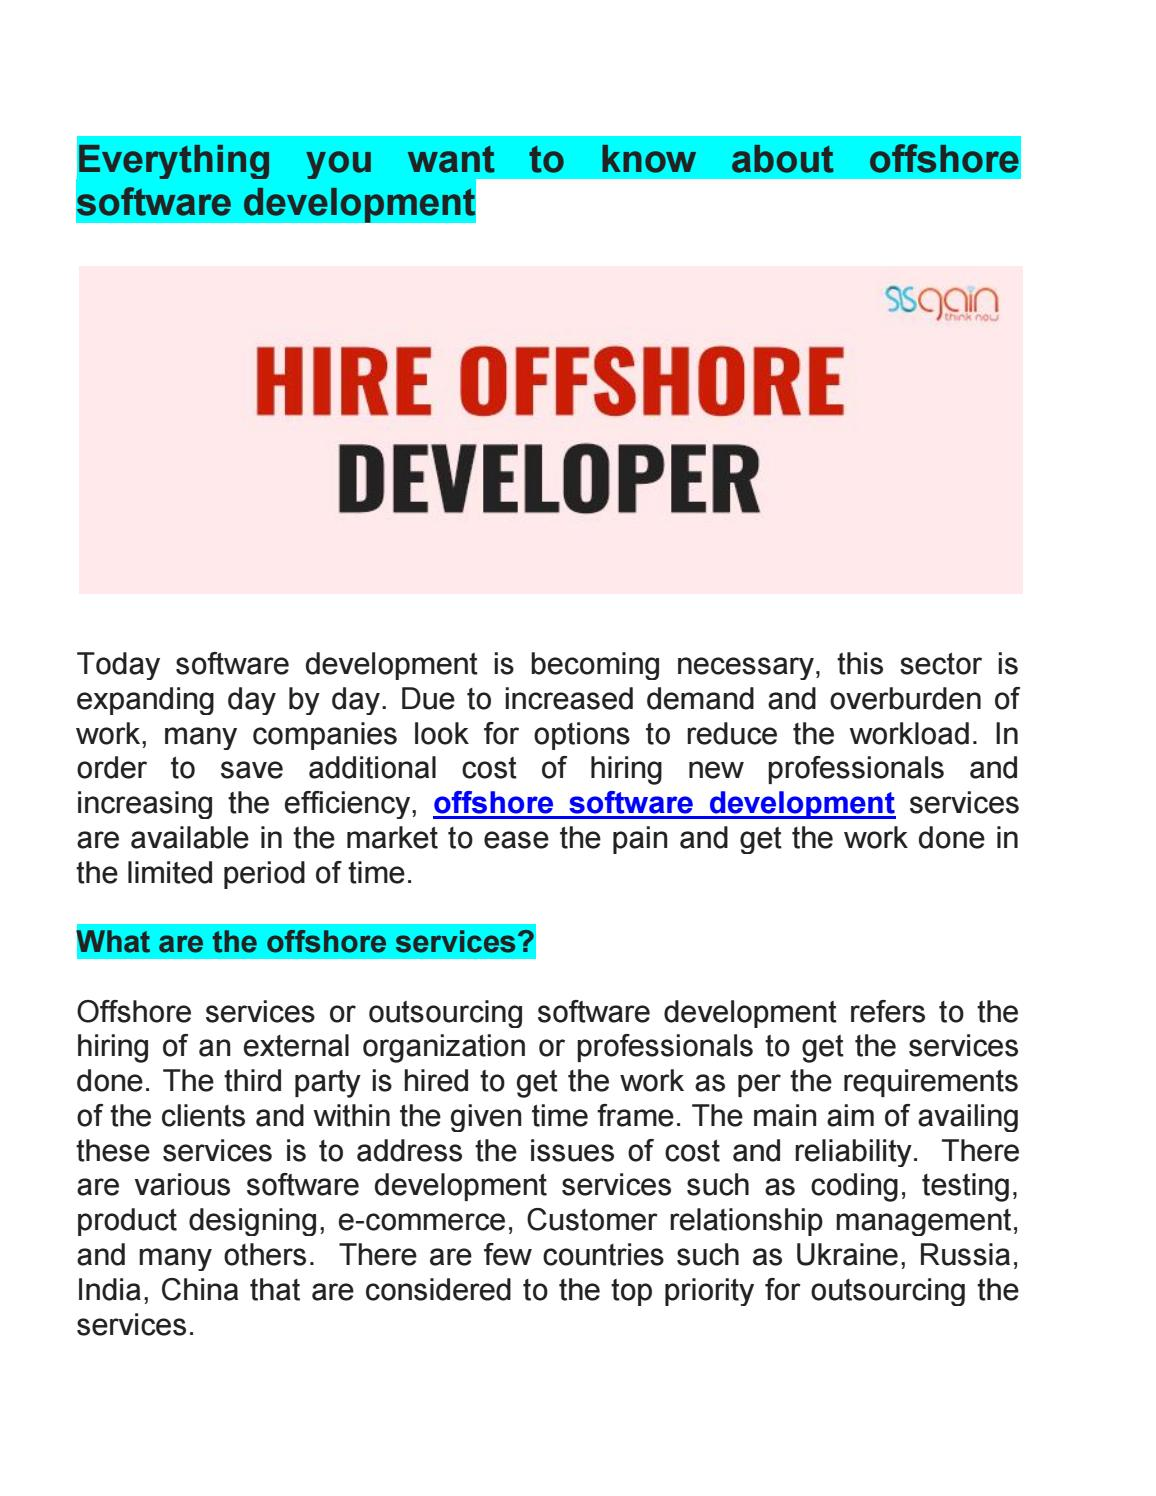 Software Developer Companies In Everything You Want To Know About Offshore Software Development